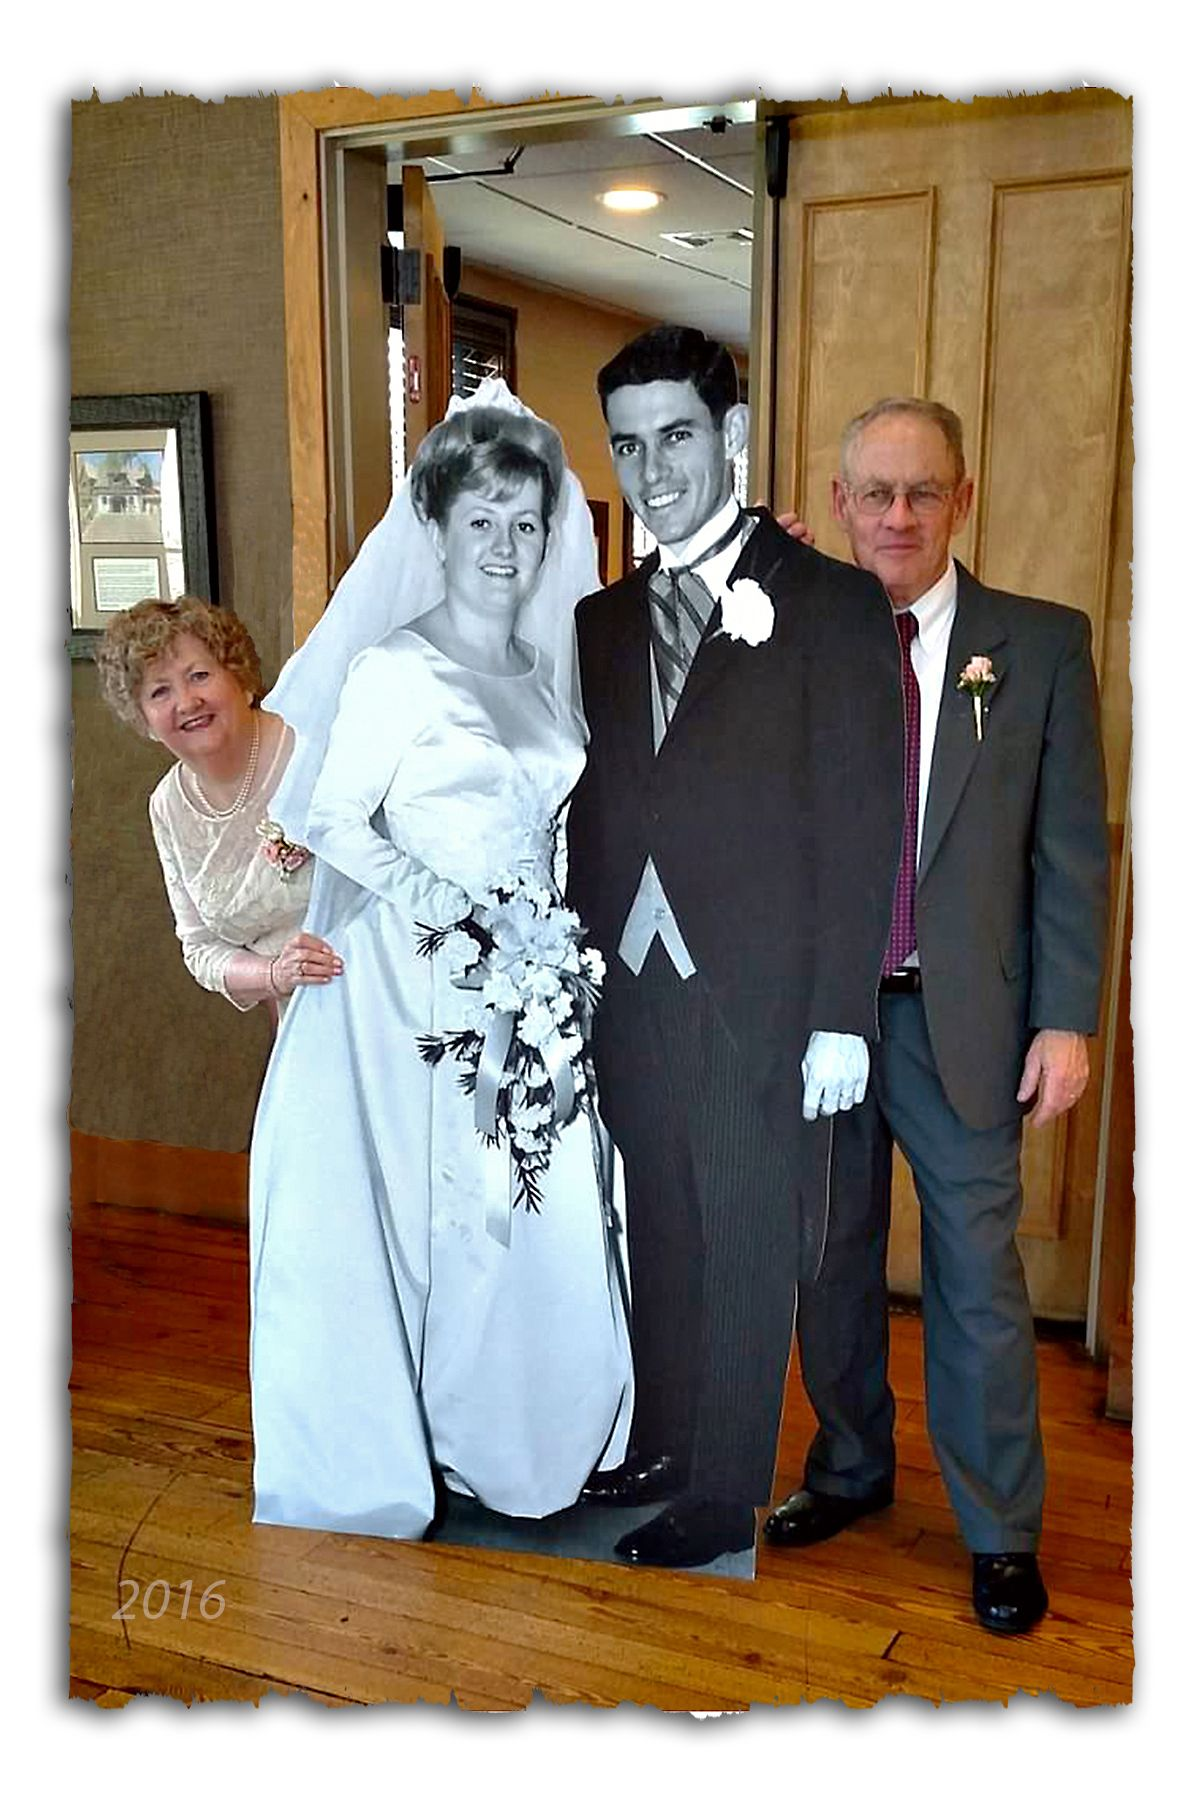 A 6\' cutout wedding picture taken 50 years ago was a hit at our ...